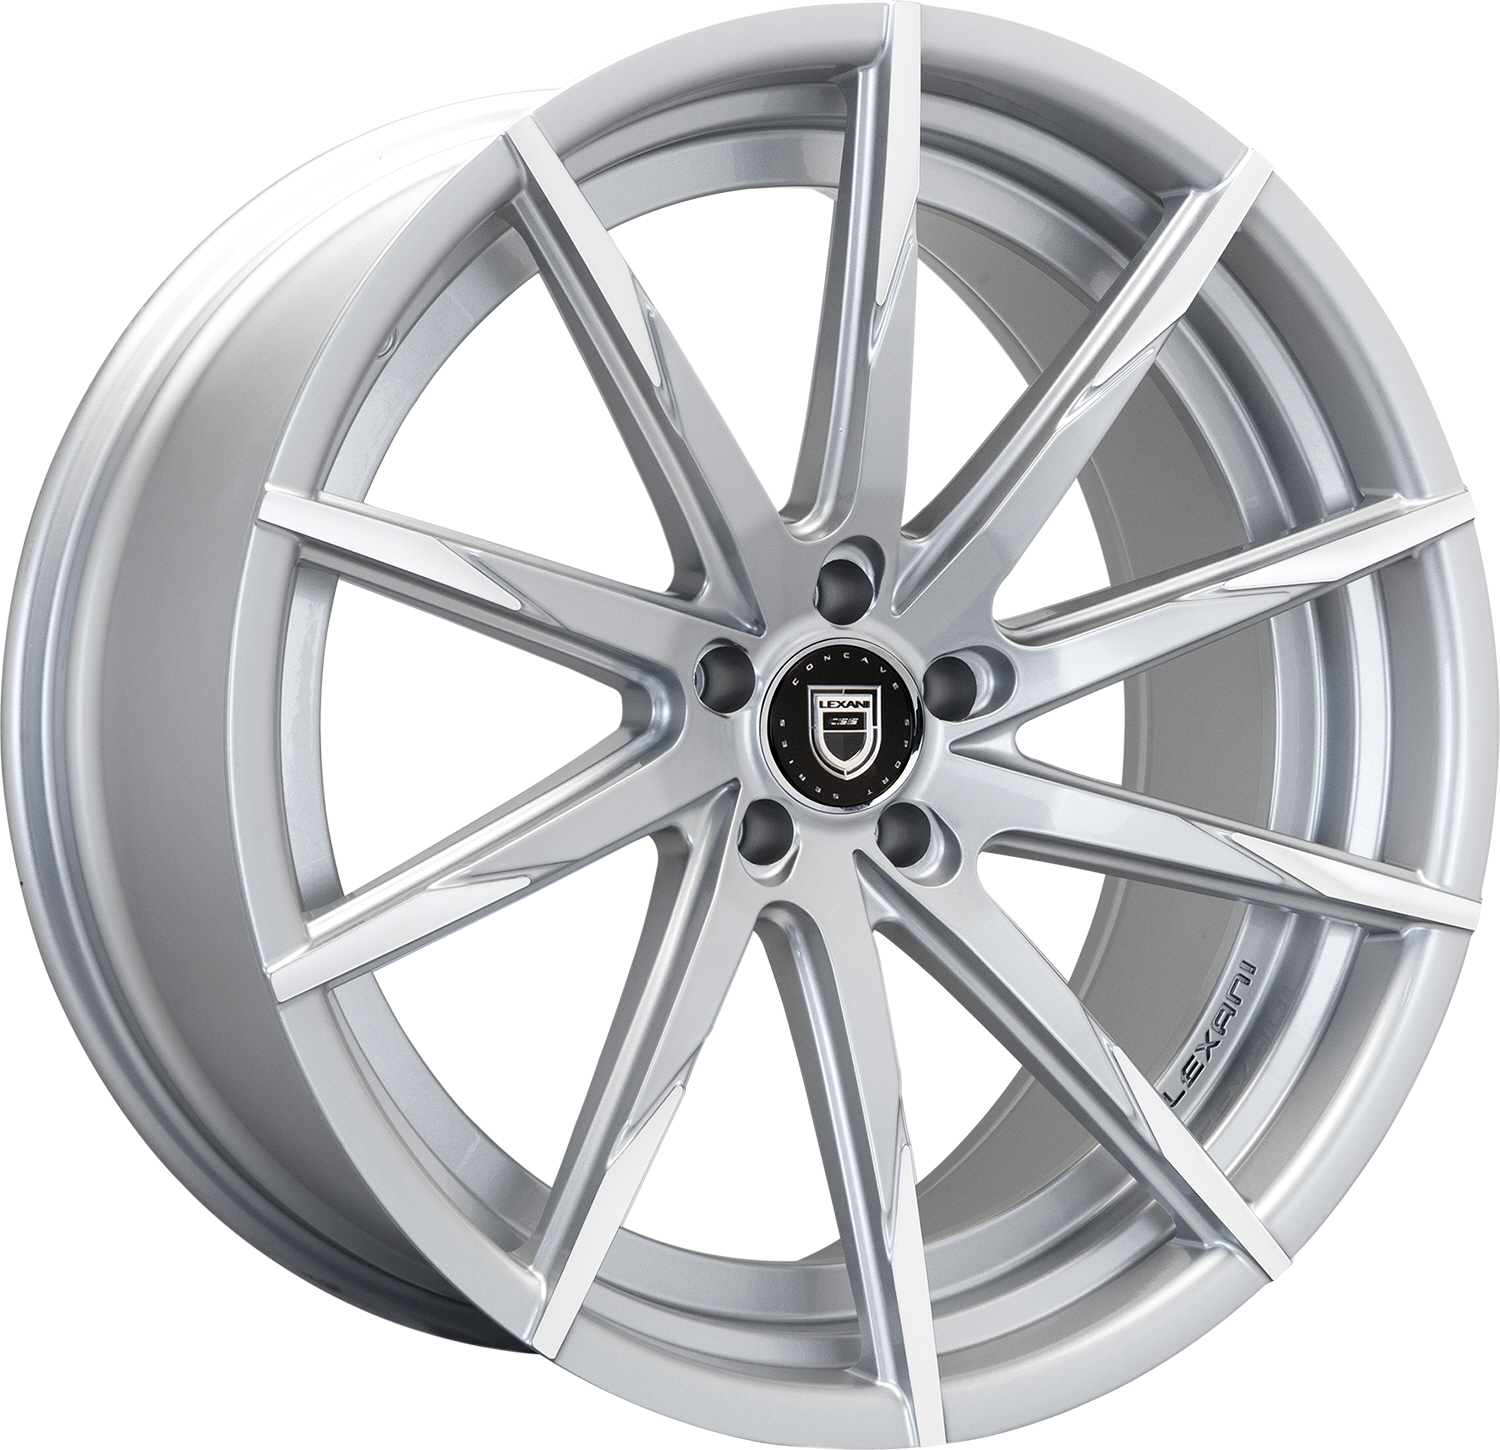 CSS-15  WHEELS AND RIMS PACKAGES